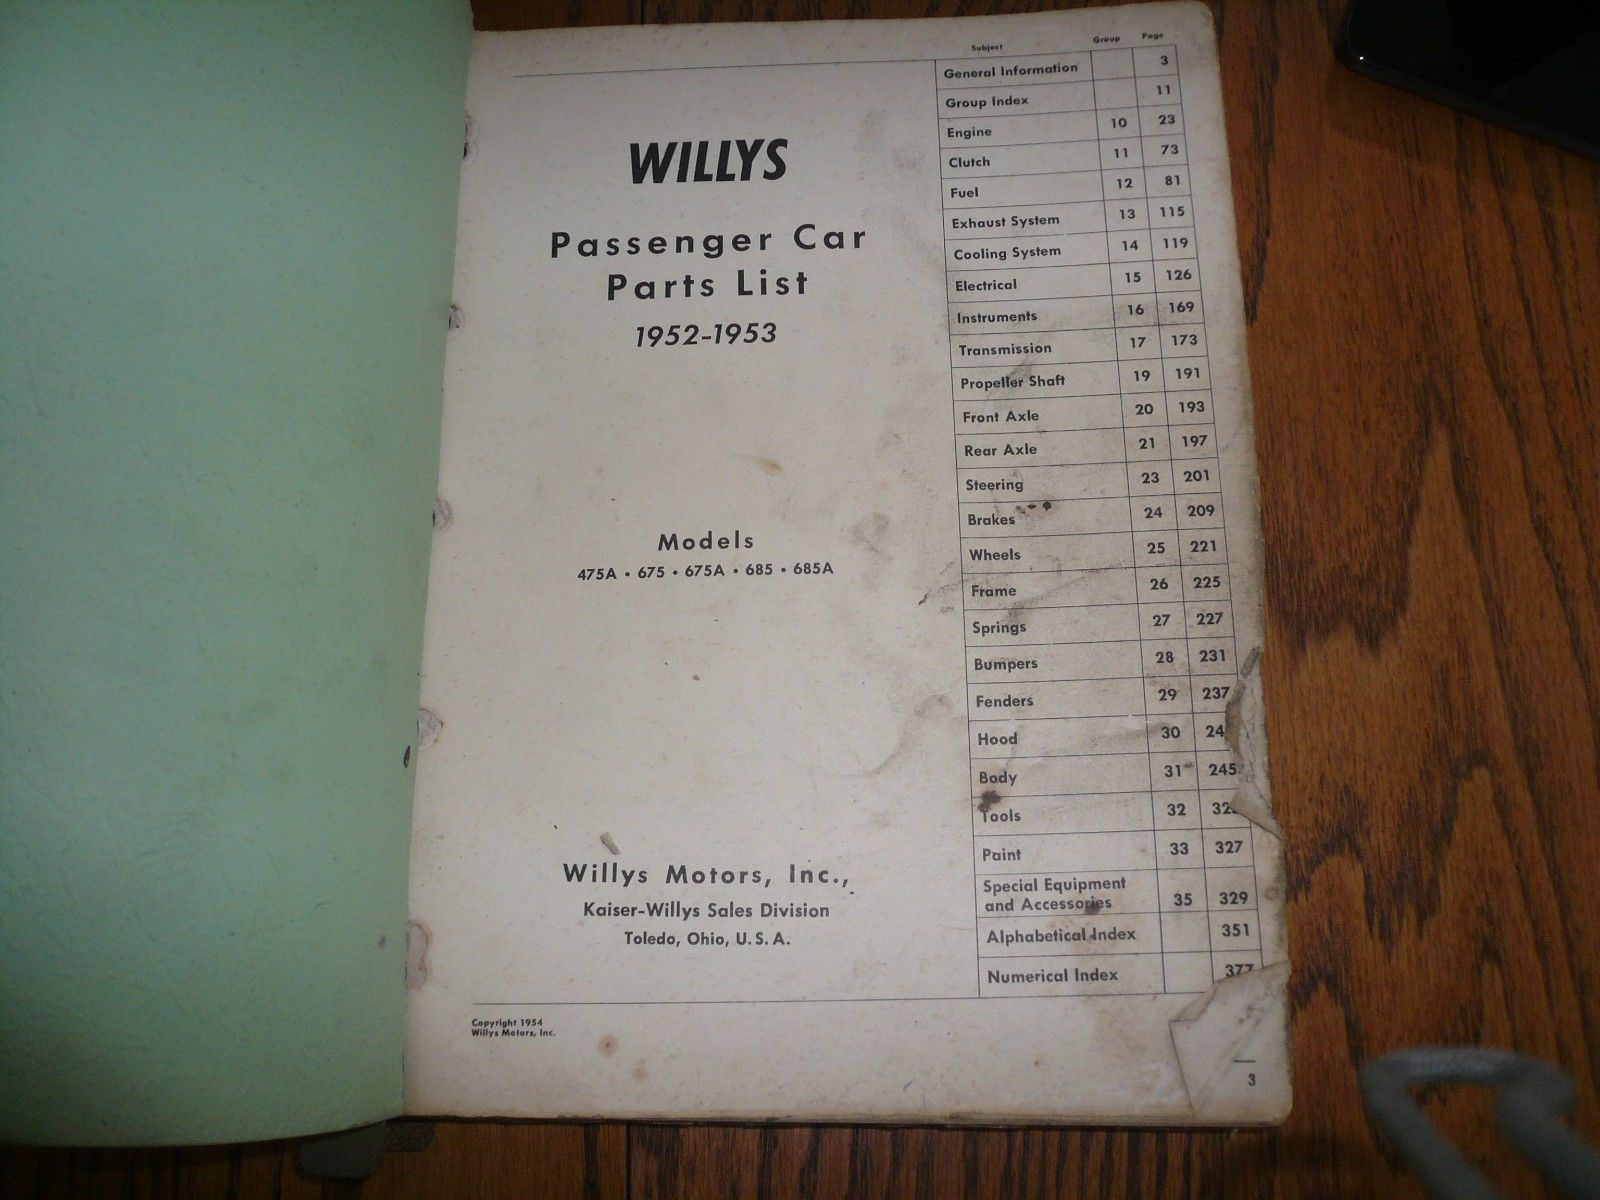 685 Willys Wiring Diagram Services Harness 1952 1953 Passenger Car Parts List And 50 Similar Items Rh Bonanza Com Ford Engine